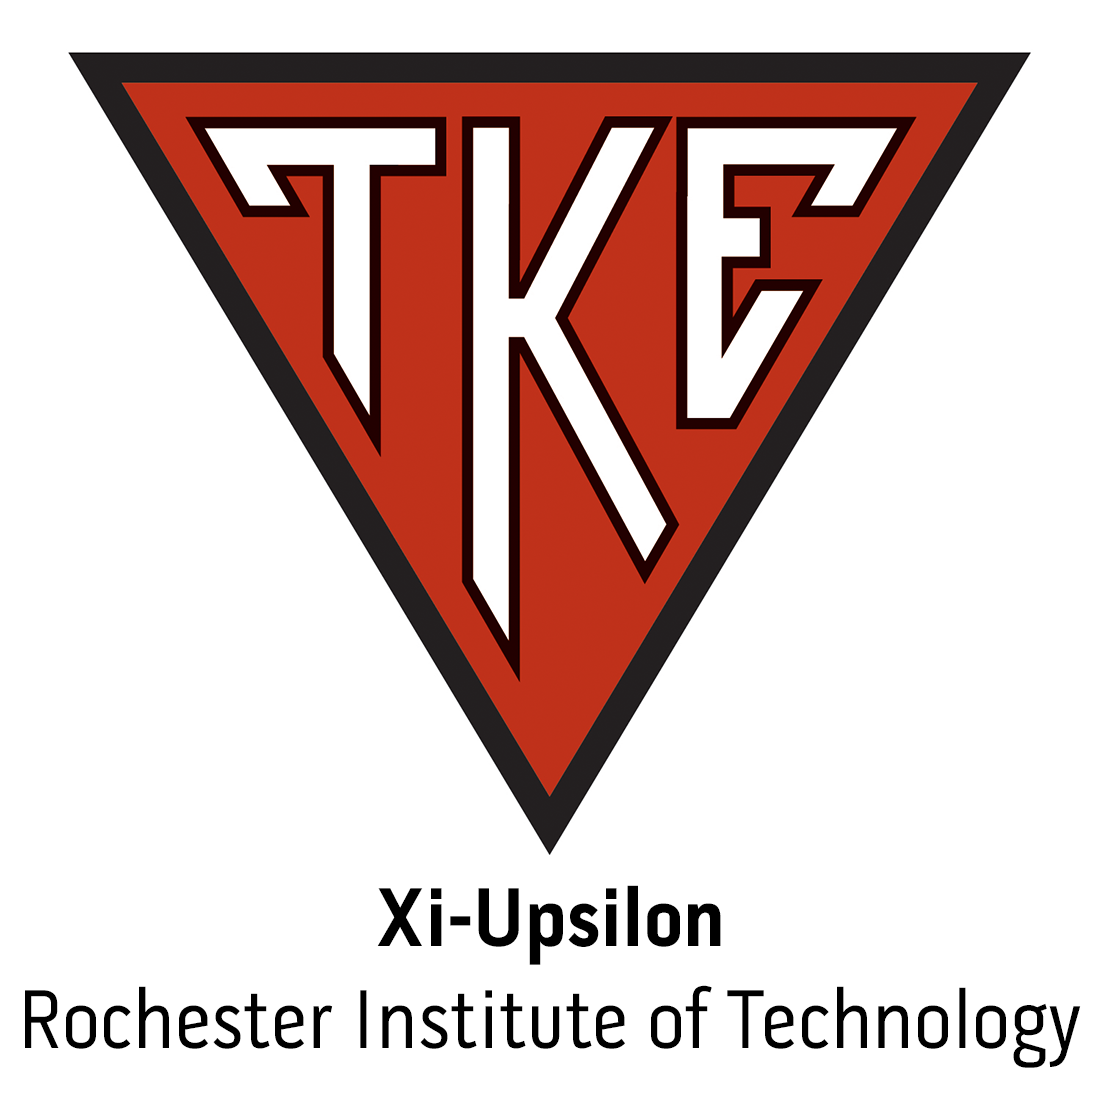 Xi-Upsilon Chapter at Rochester Institute of Technology